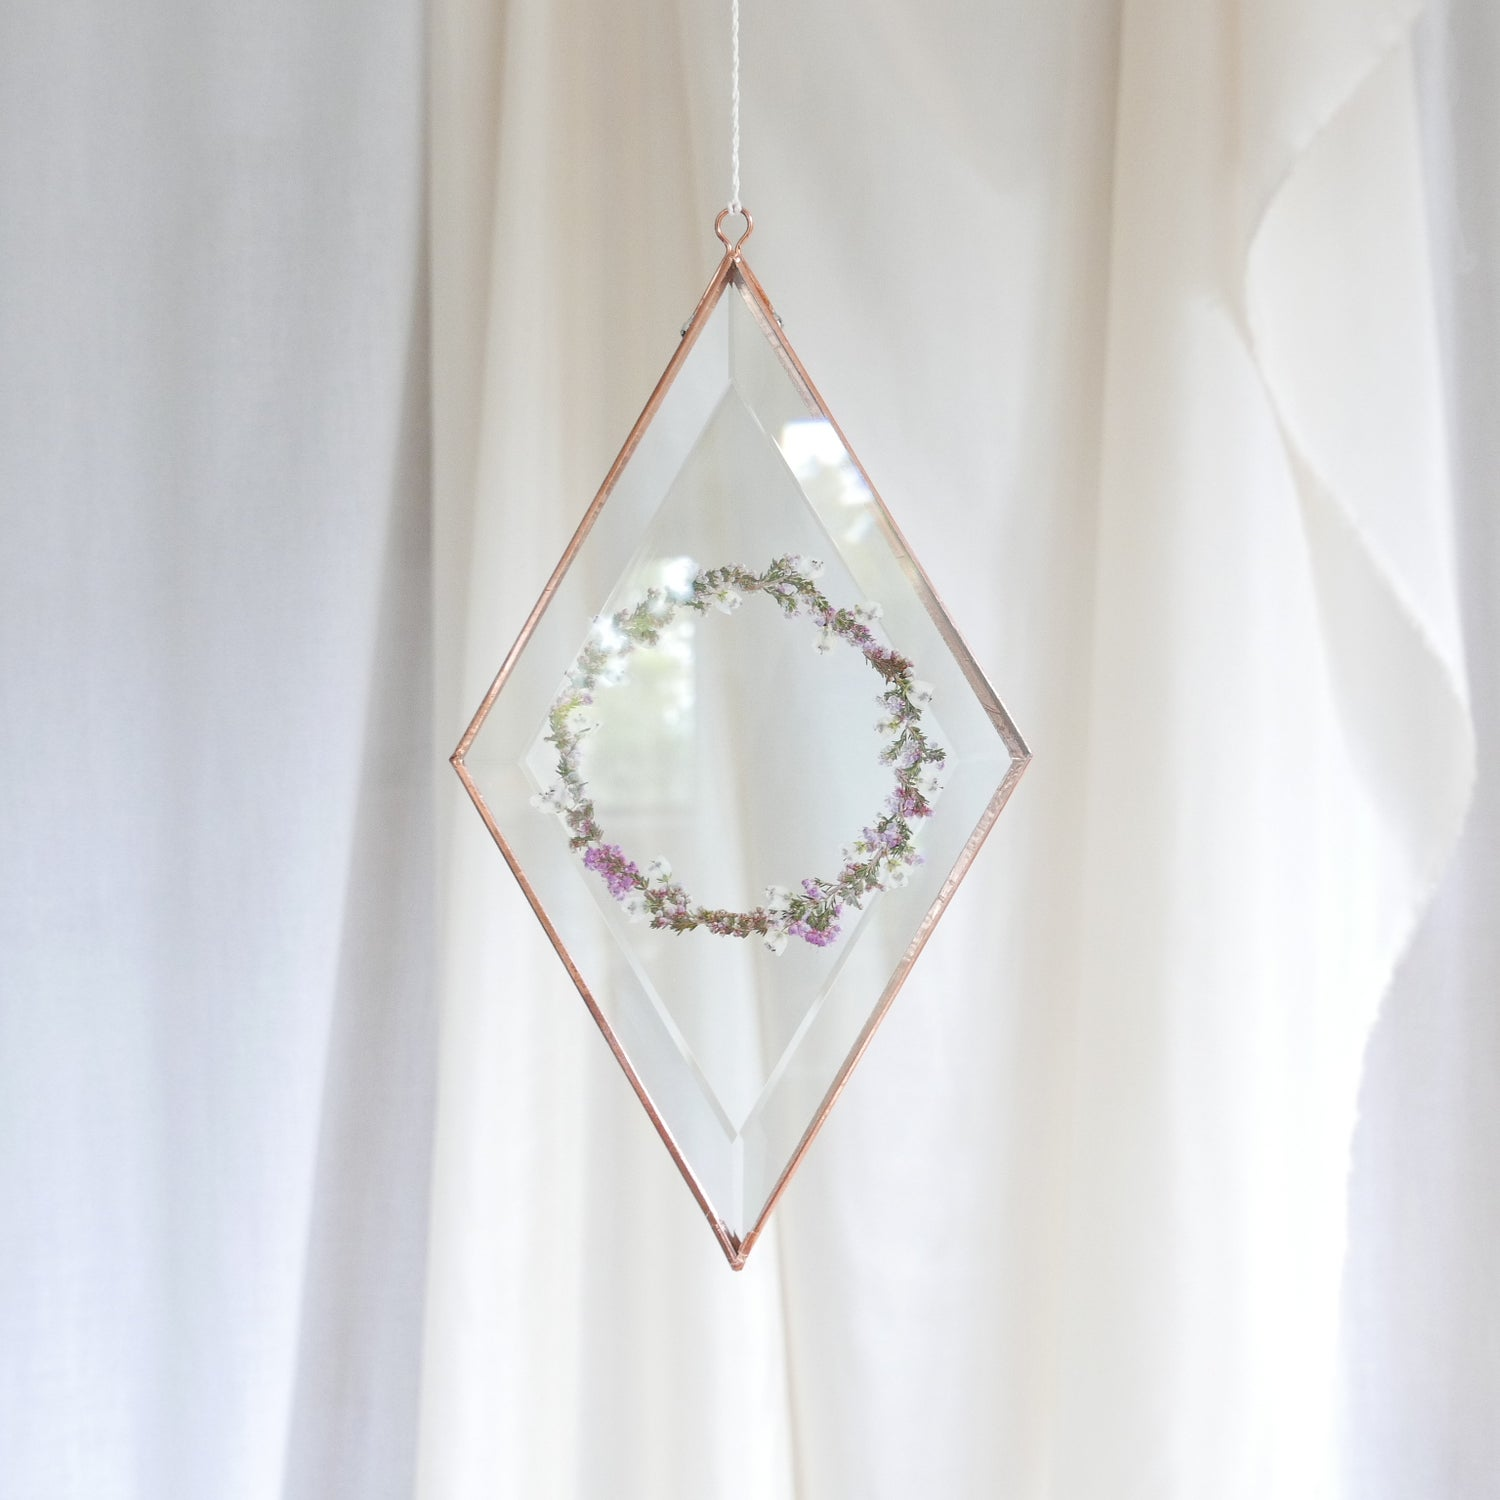 Image of Pressed Flower Suncatcher - Wreath Pink and White Erica